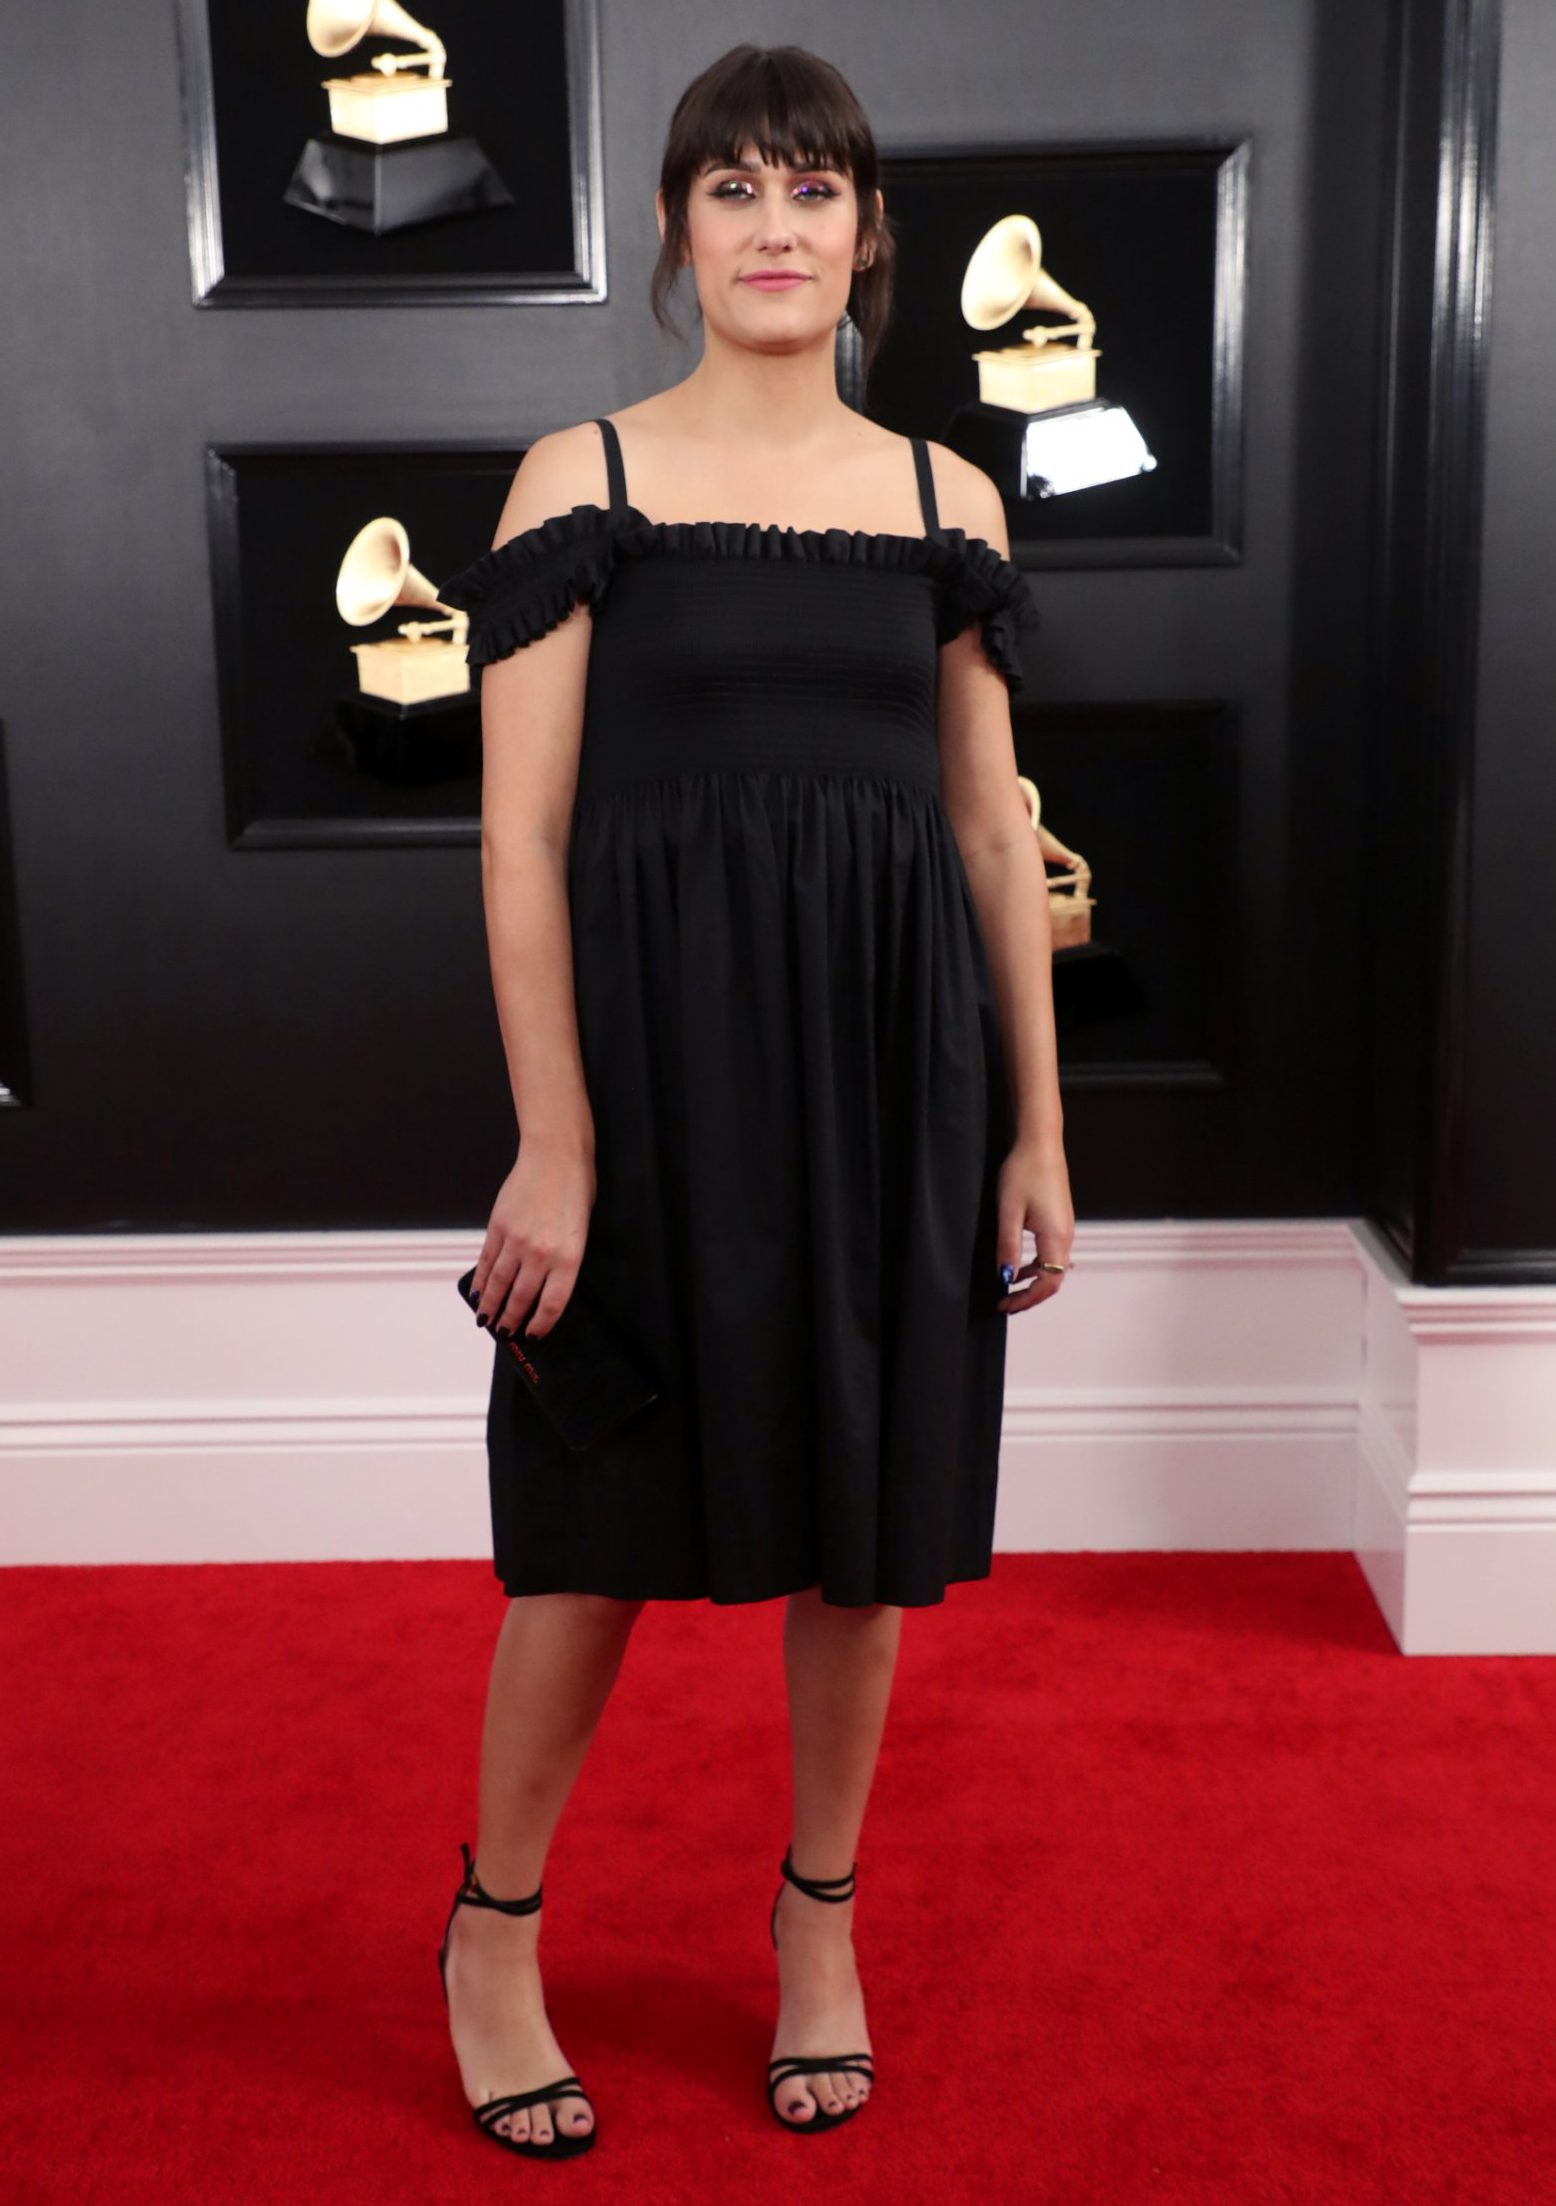 Mandatory Credit: Photo by Chelsea Lauren/REX (10095020yy) Teddy Geiger 61st Annual Grammy Awards, Arrivals, Los Angeles, USA - 10 Feb 2019